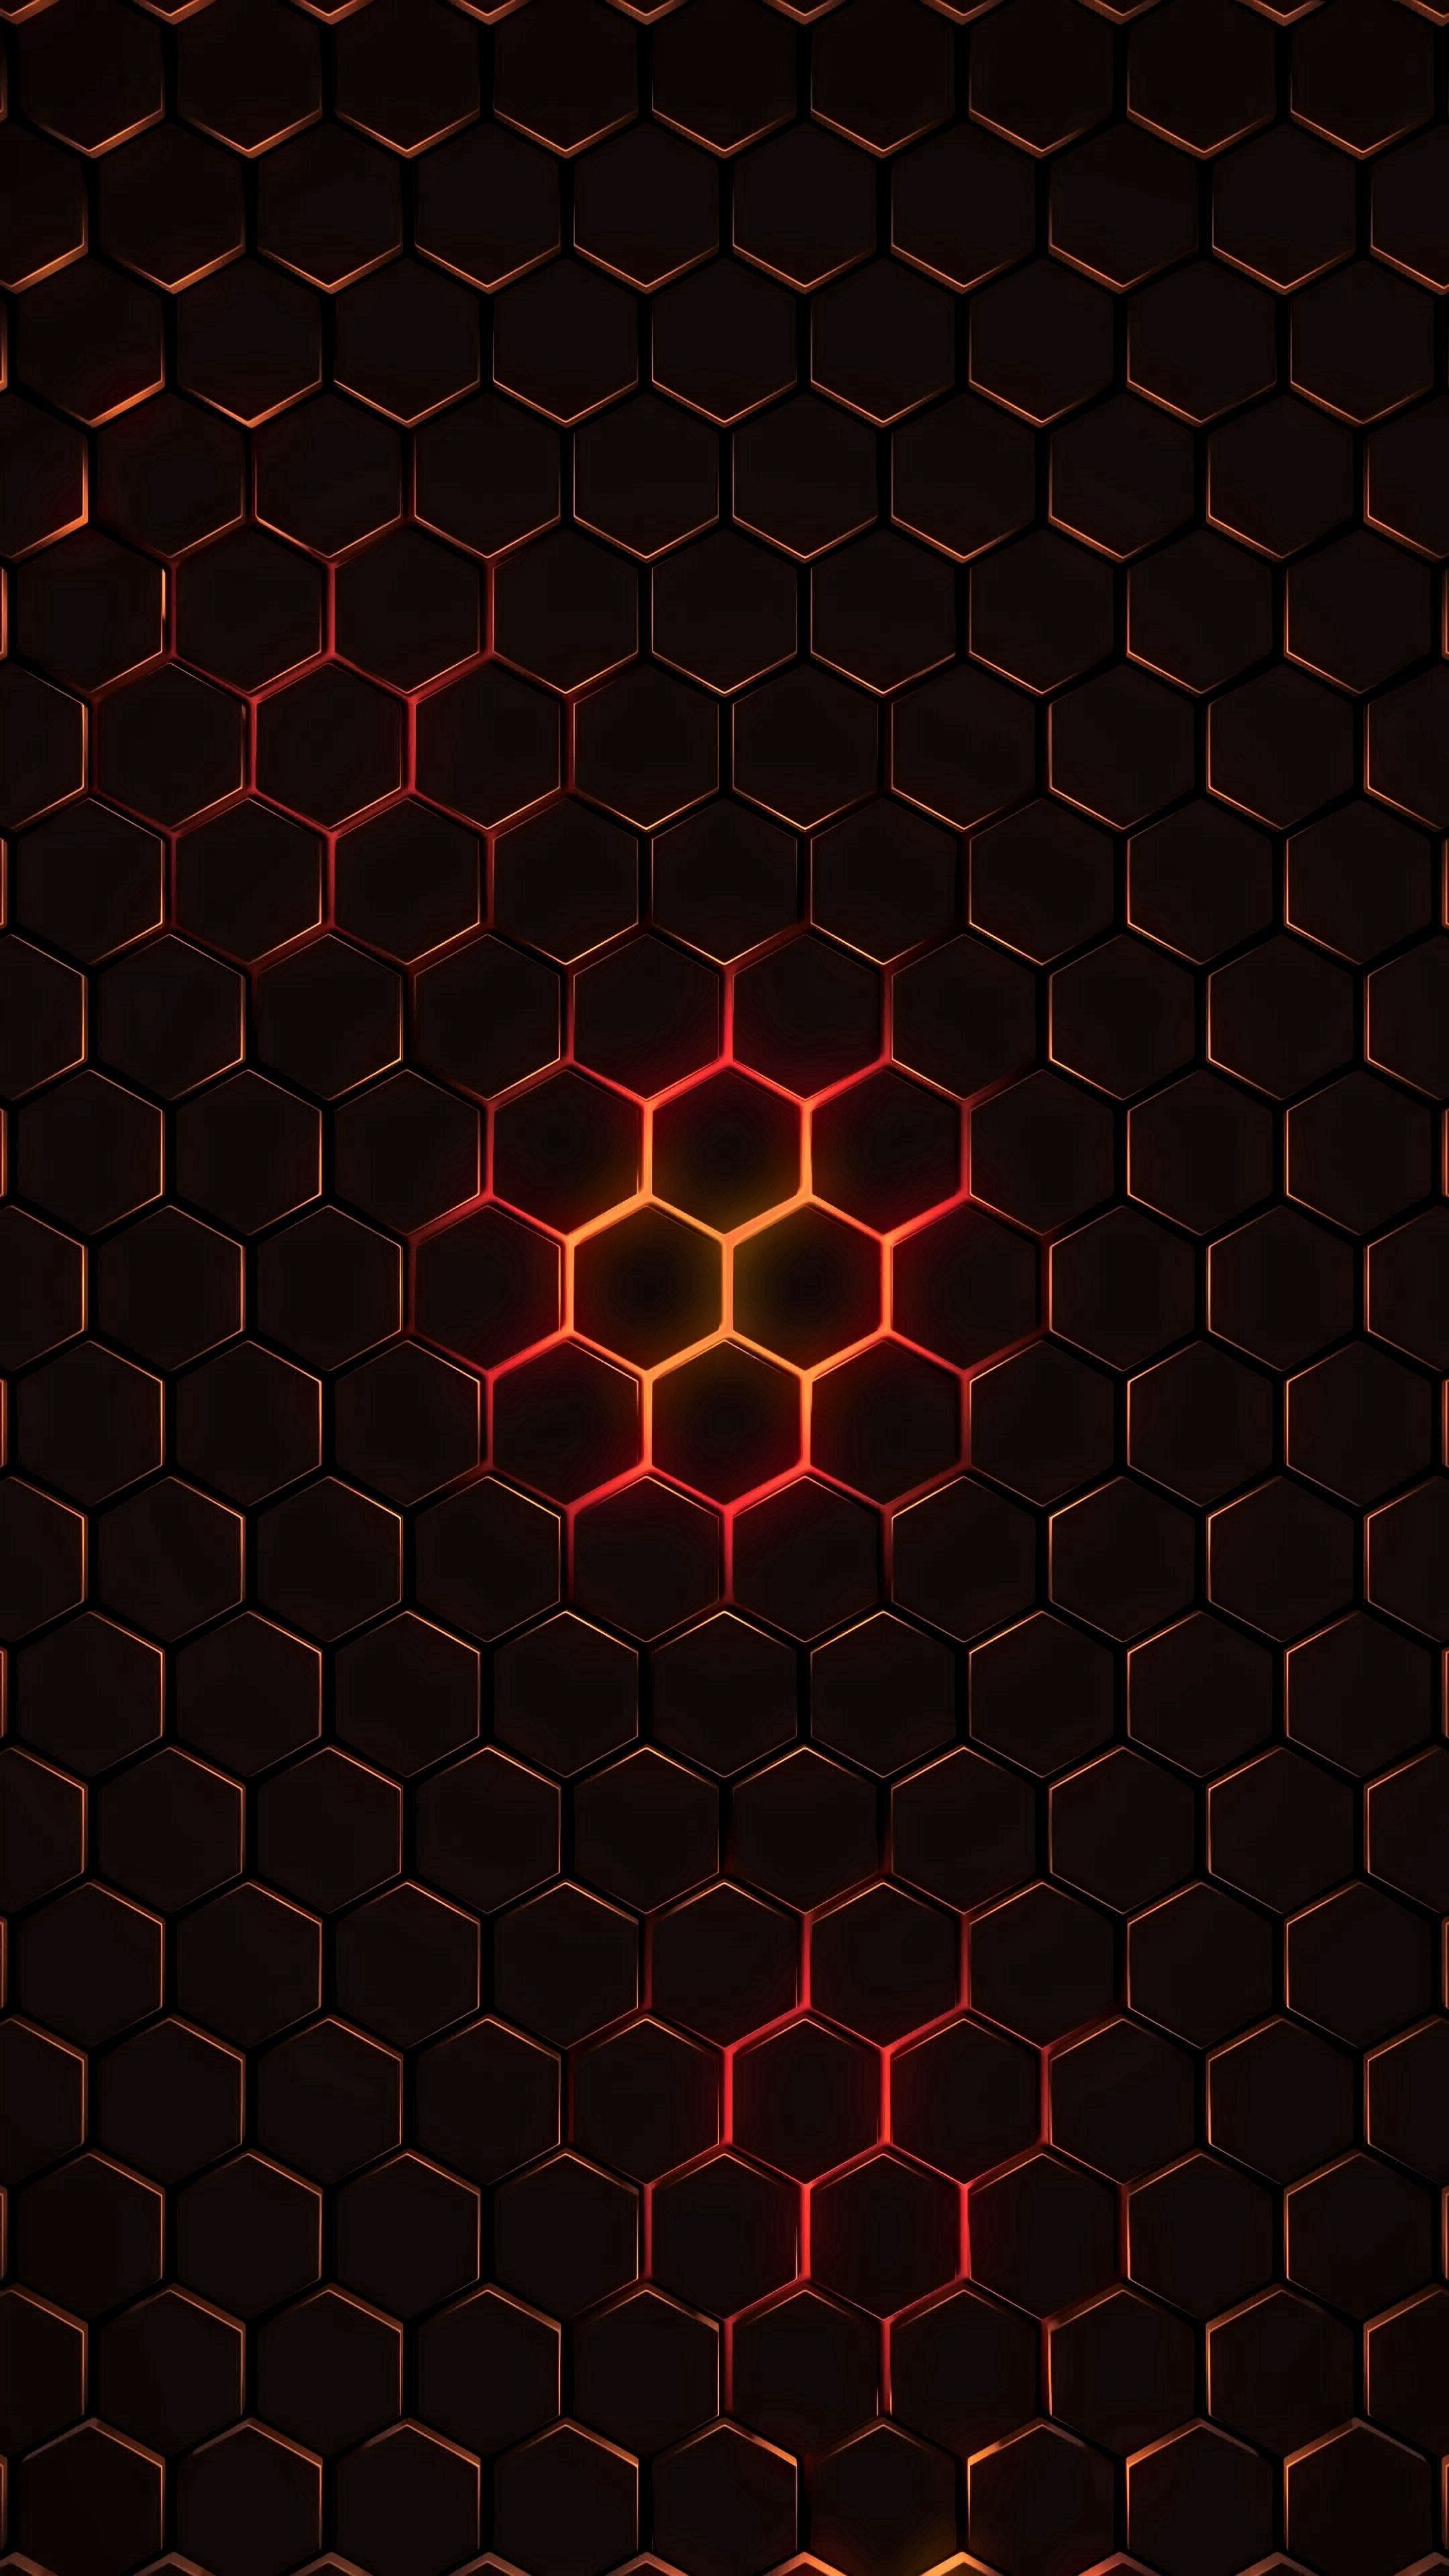 122582 download wallpaper Abstract, Dark, Texture, Glow, Cells, Hexagons, Cell, Hexagonals screensavers and pictures for free